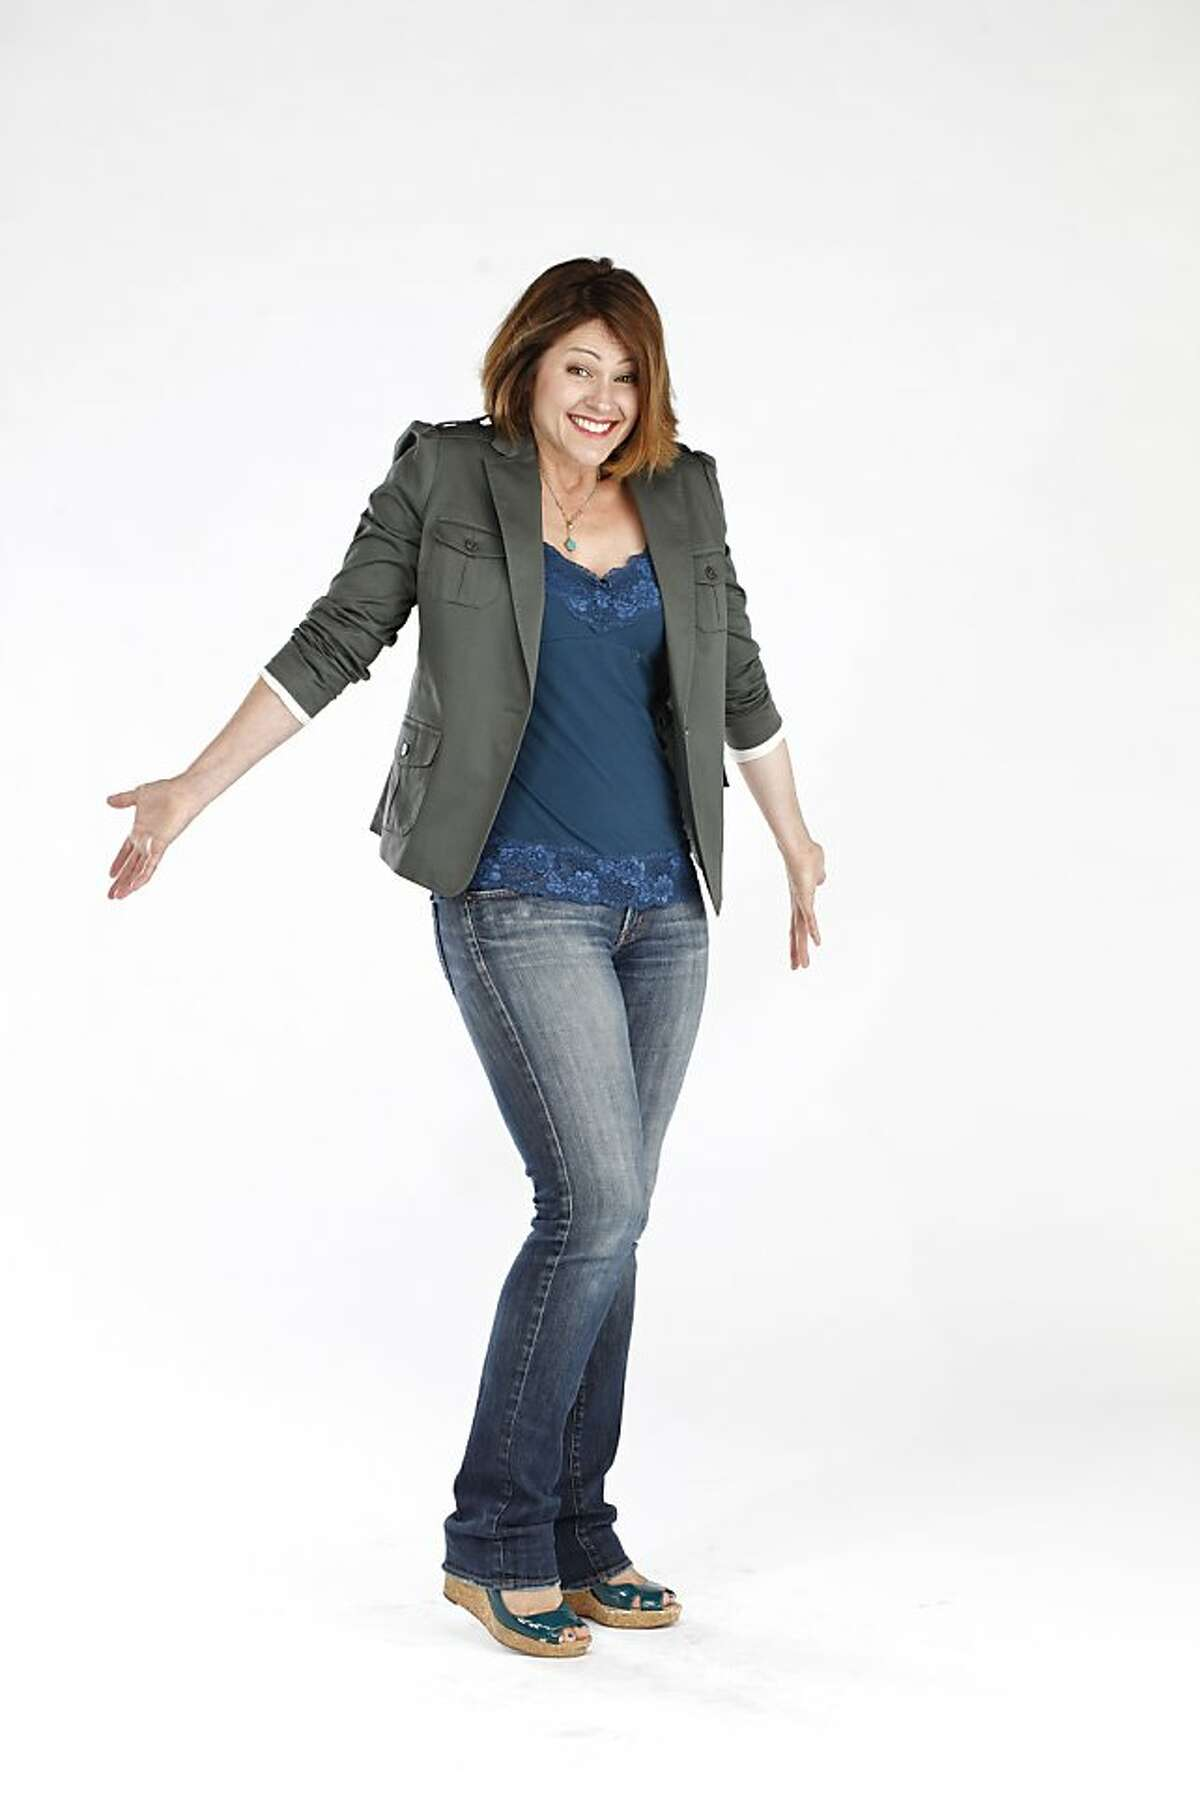 Shannon Kaye, seen on Tuesday, July 30, 2013 in San Francisco, Calif., is in this week's Stylemaker Spotlight.